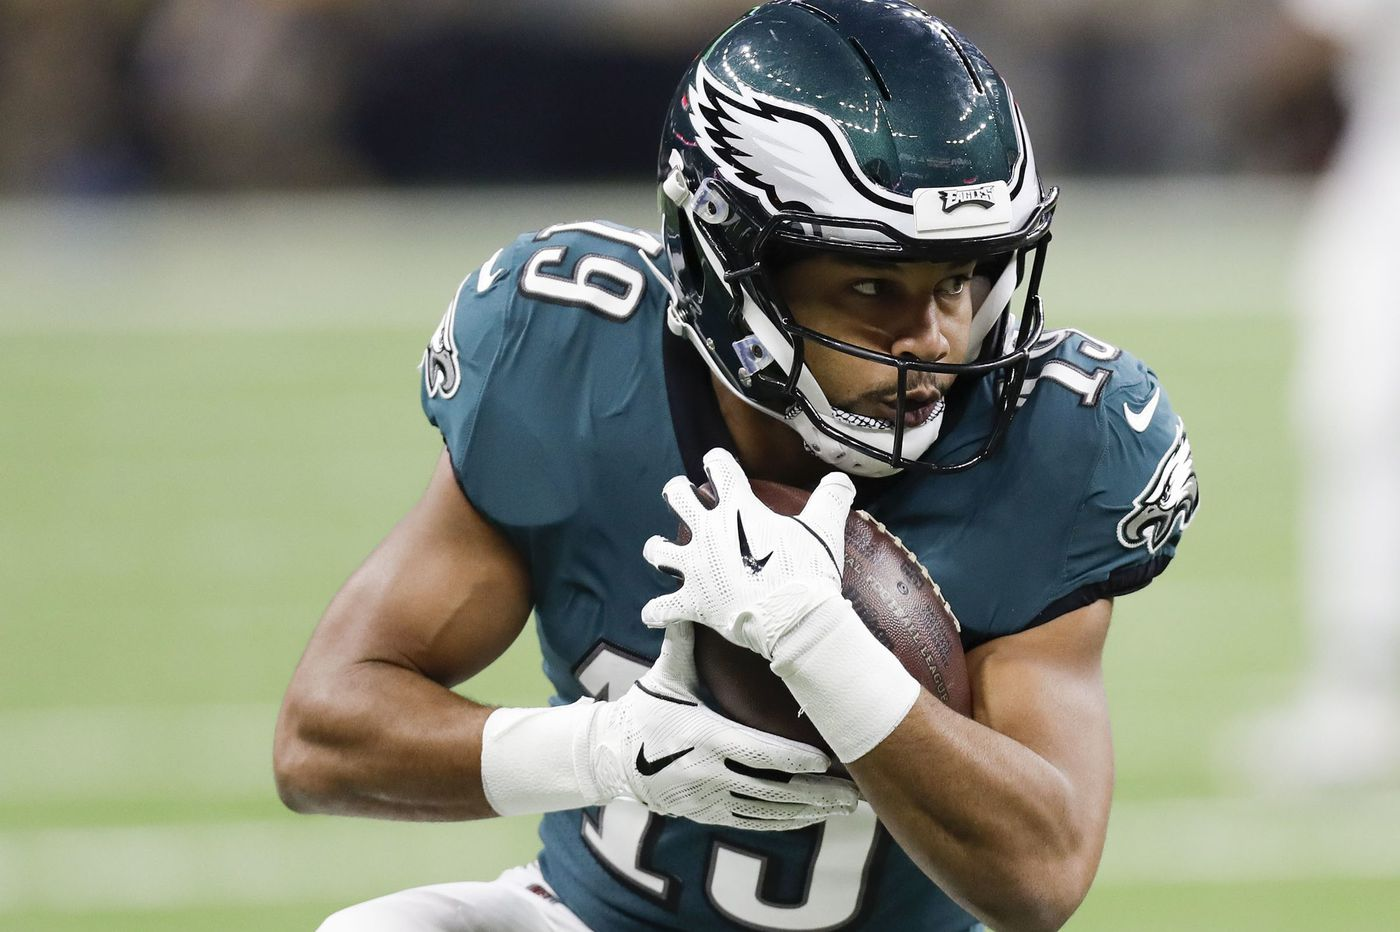 With the Eagles, Golden Tate is catching on to a different kind of offense | Bob Ford